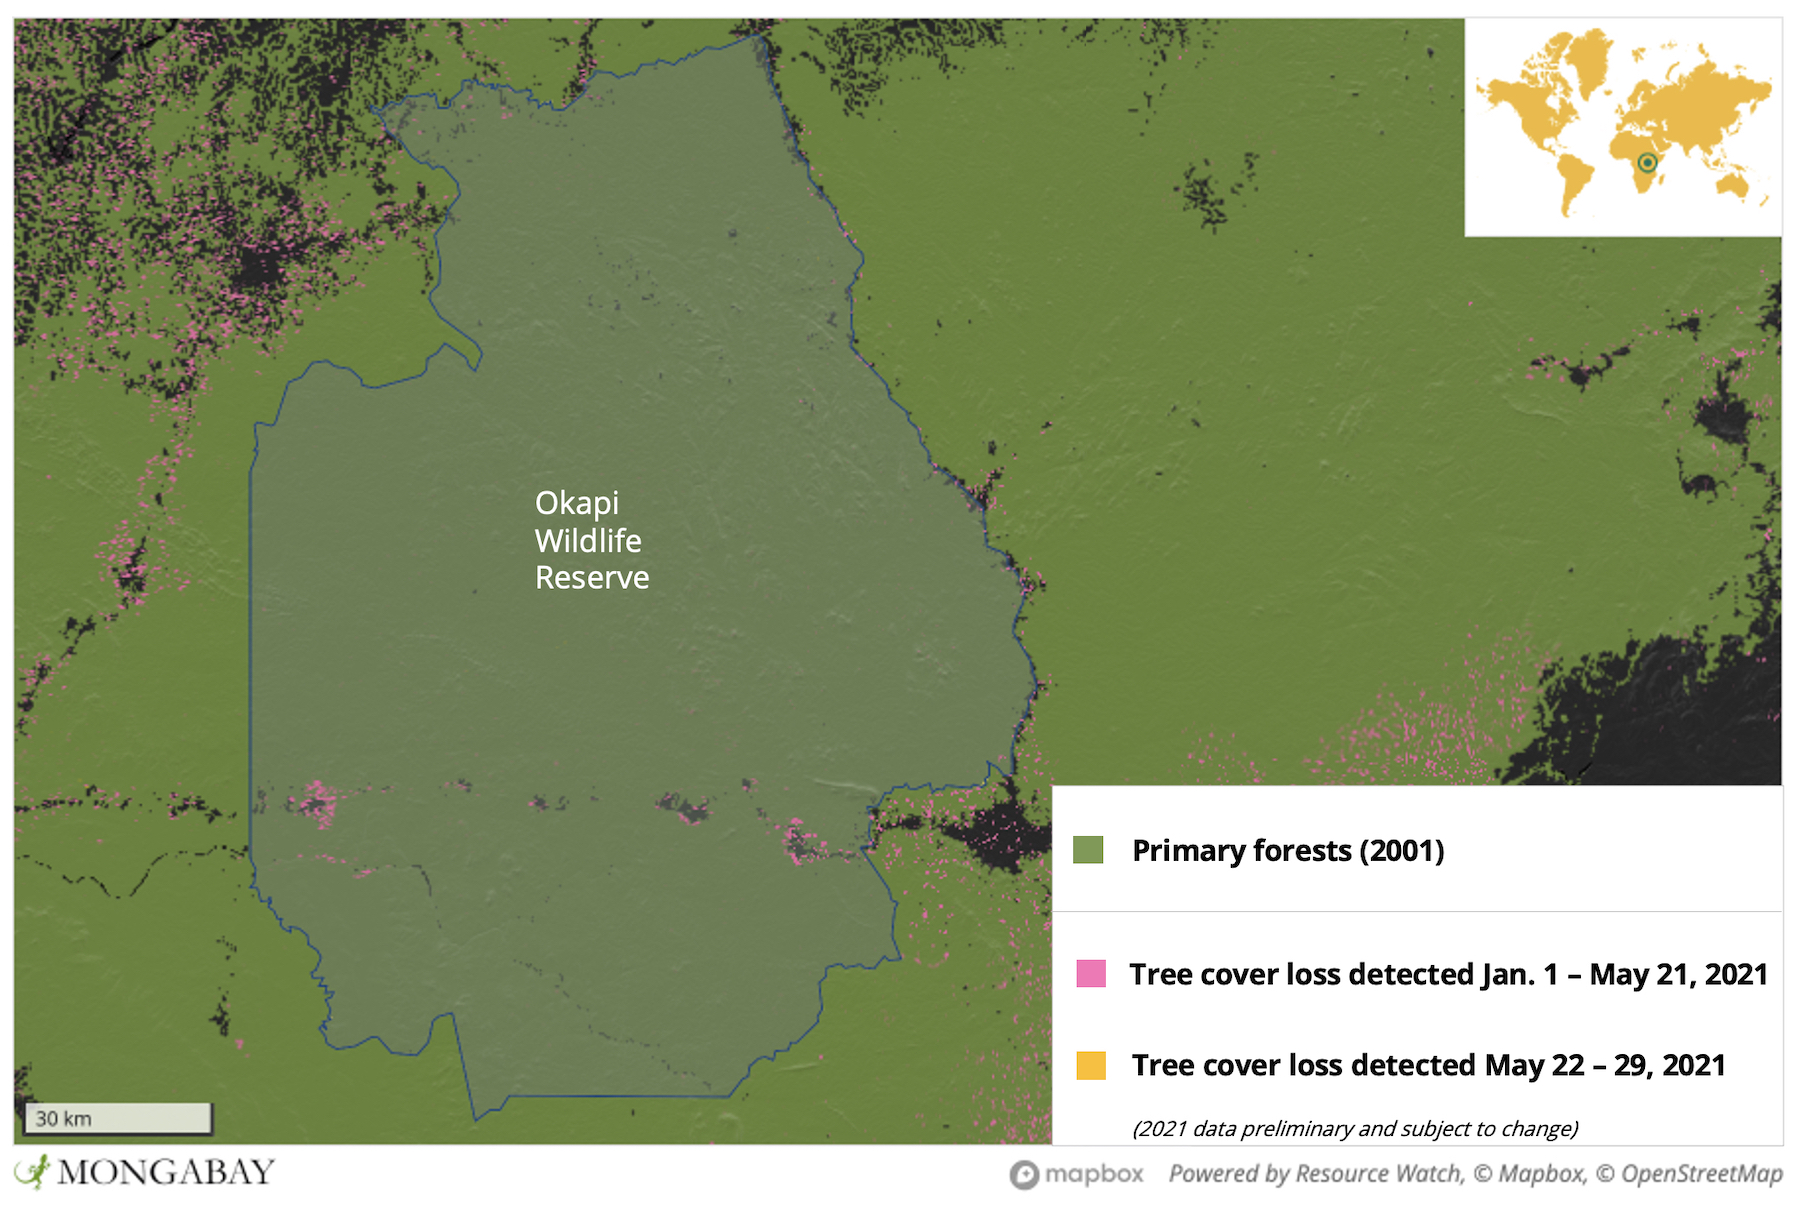 Most recent deforestation is taking place in the southern part of the reserve, where satellite imagery shows clearings proliferating along a road and river, and around settlements. The more remote northern portion is also experiencing a wave of expanding intrusions pockmarking ever-further into the rainforest.